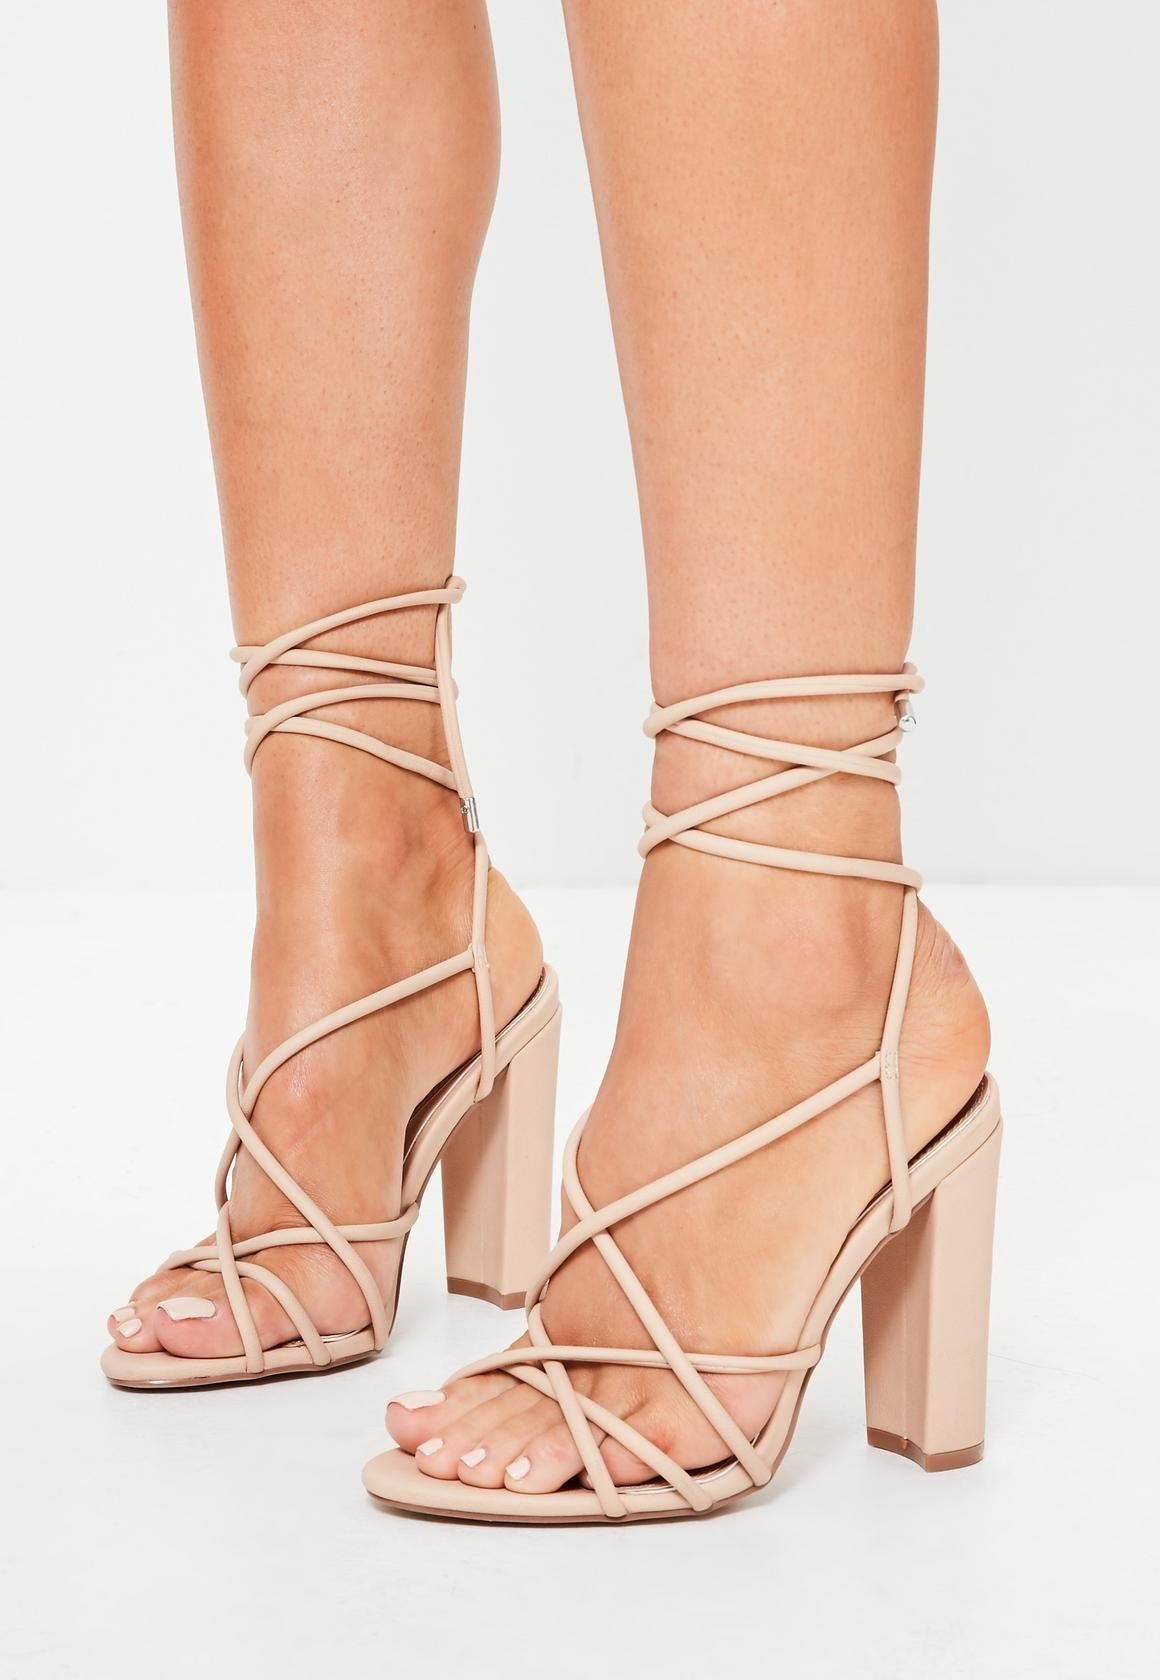 583bfe8480b3 Missguided - Nude Curved Block Heel Multi Strap Sandals